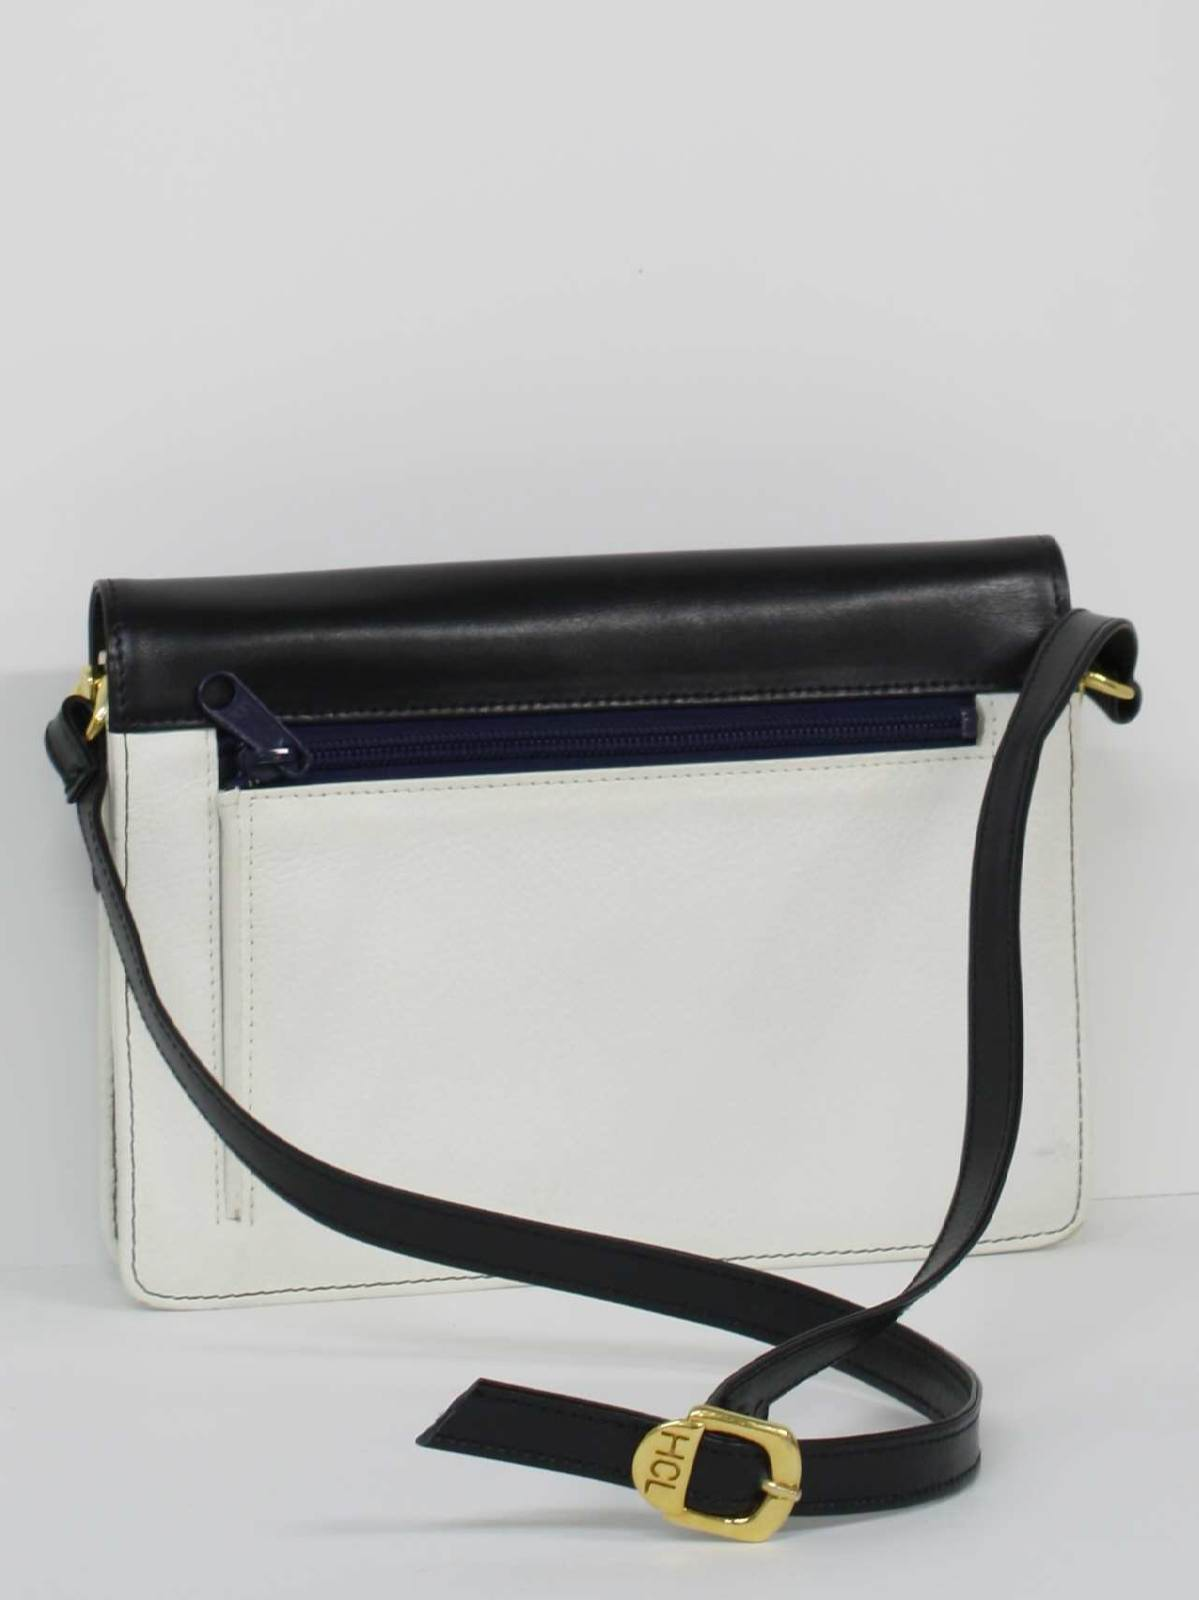 Hcl handcrafted leather goods - Eighties Purse 80s Hcl Handcrafted Leather Goods Germany Womens Black Smooth And White Pebbled Genuine Leather Handbag With Brass Clasp And Findings